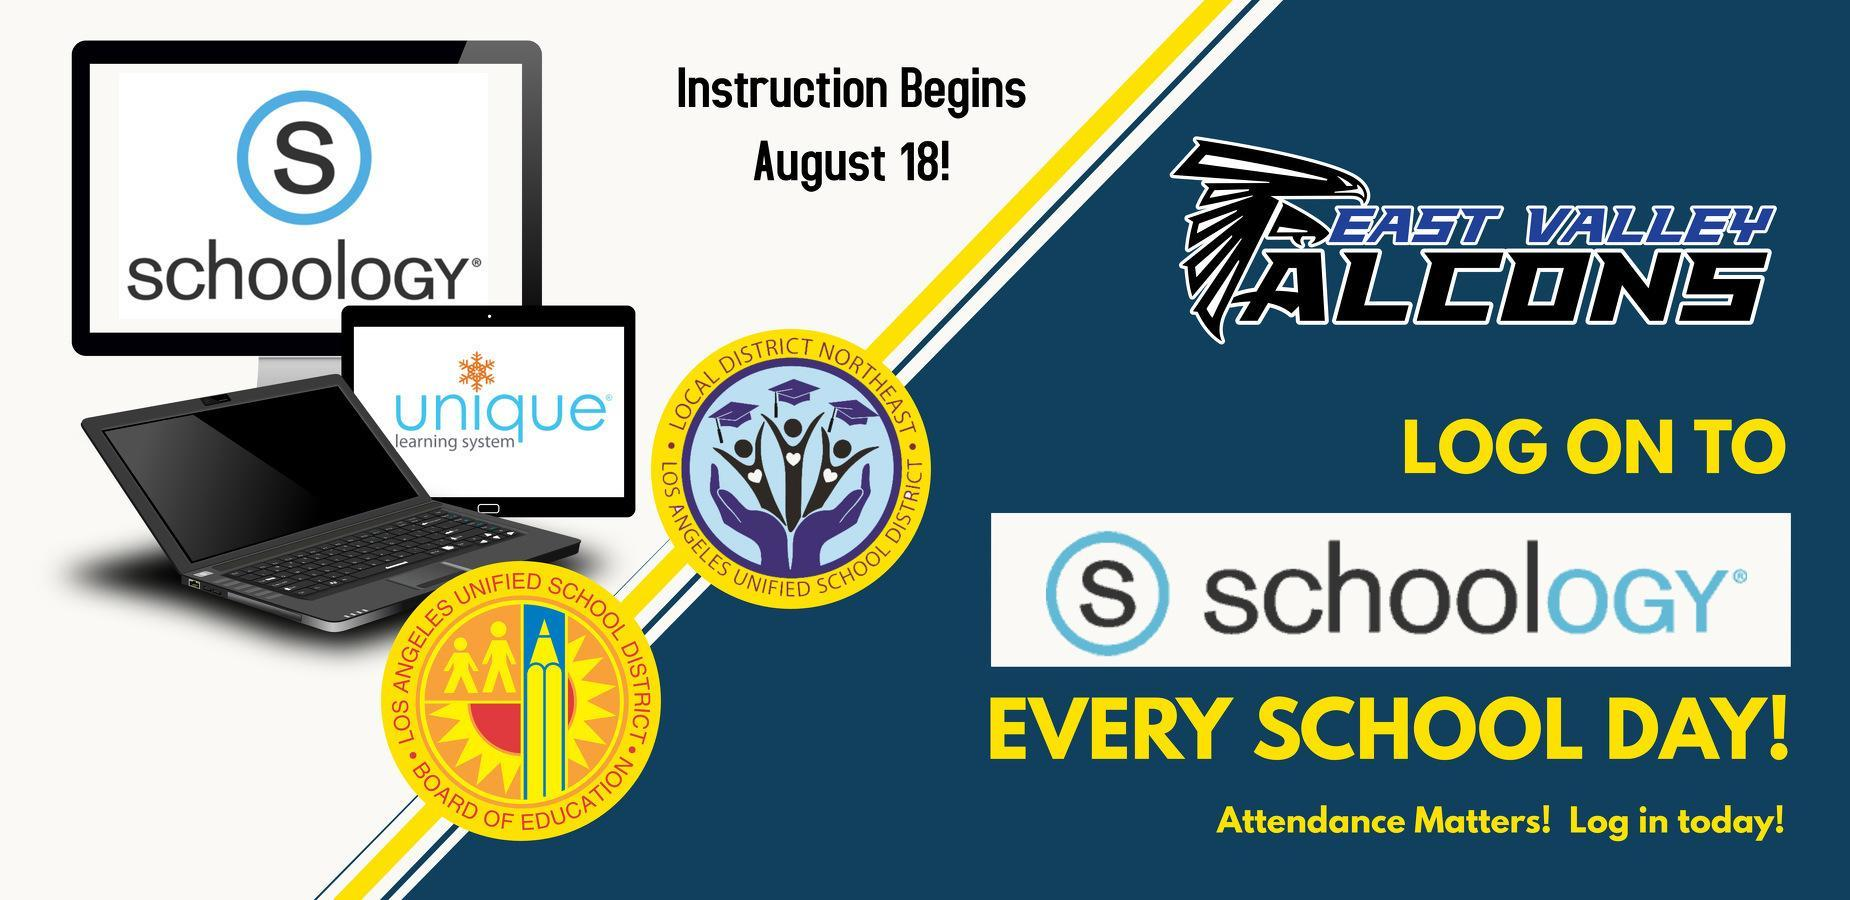 Sign in to Schoology every school day!